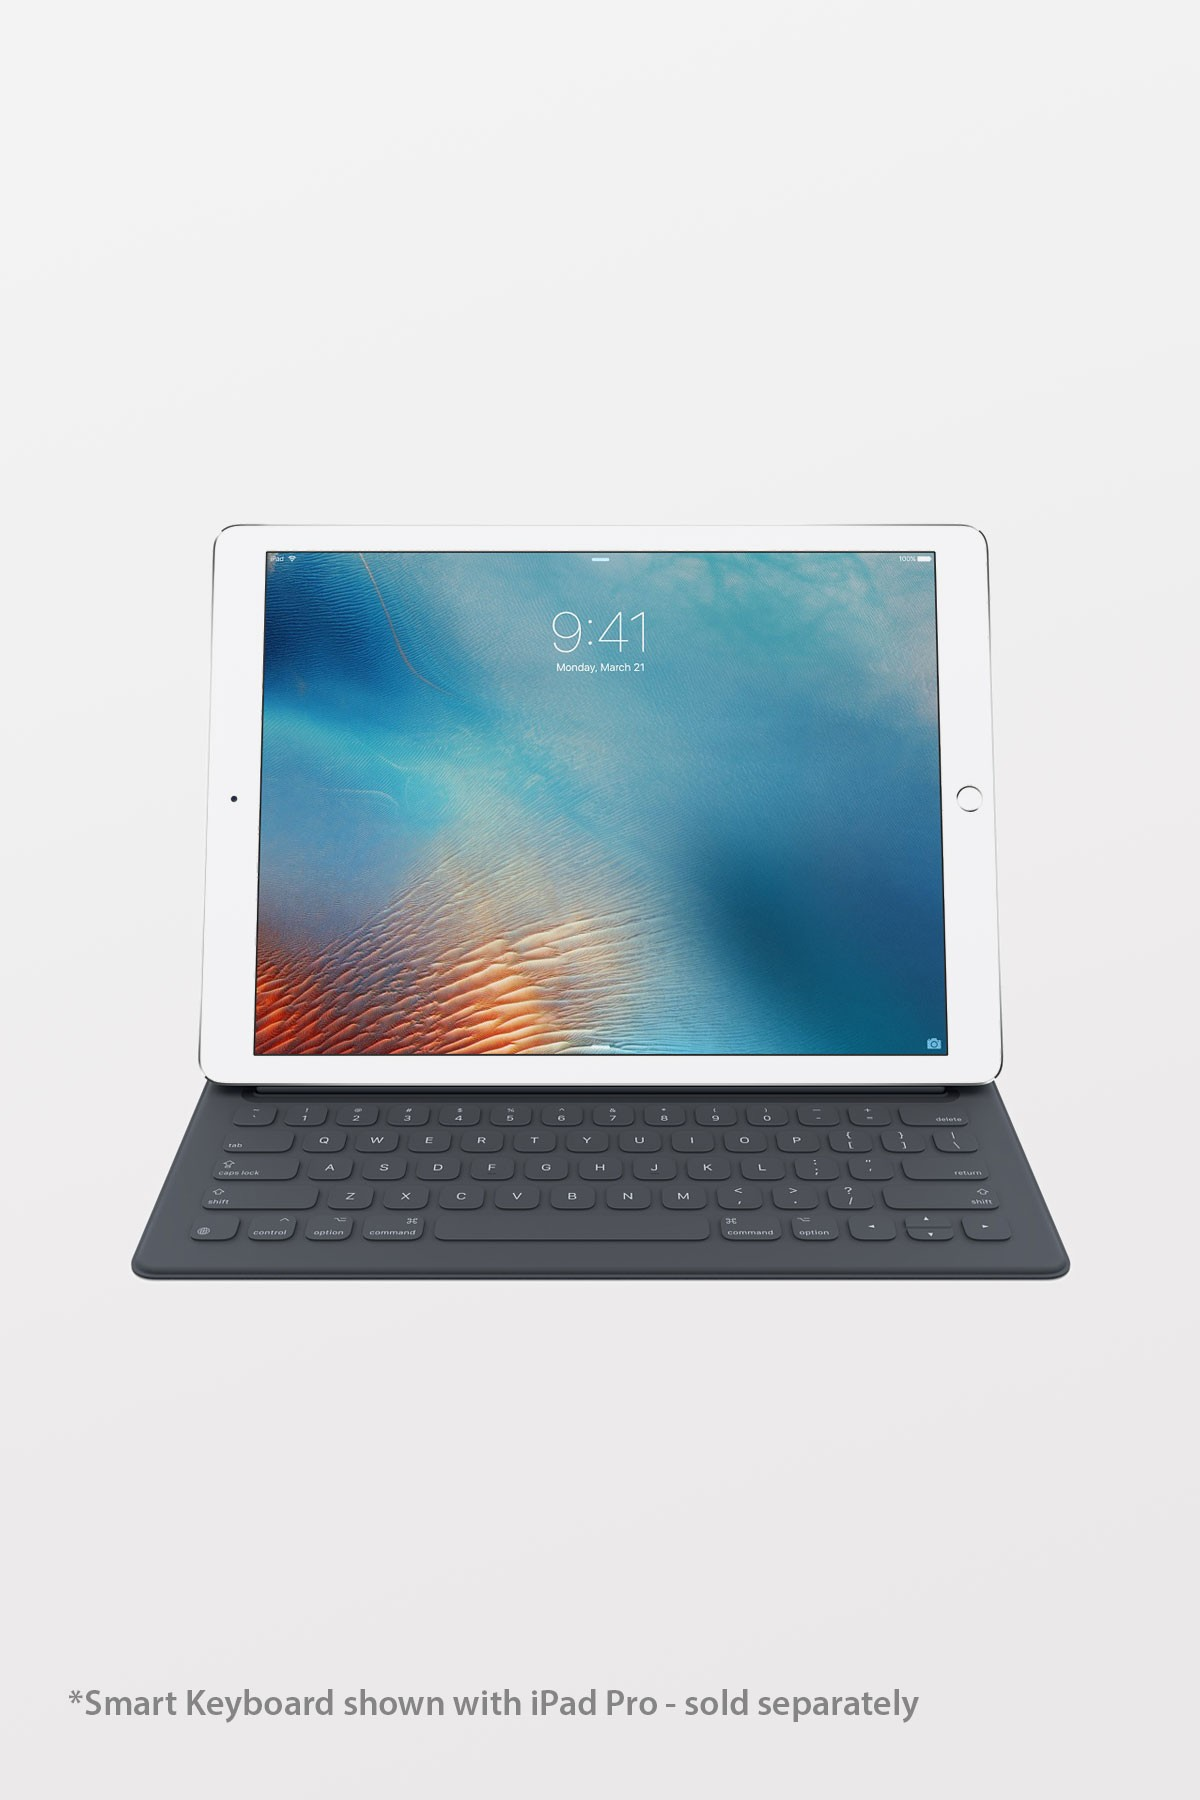 Apple iPad Pro 9.7-inch Smart Keyboard - Refurbished